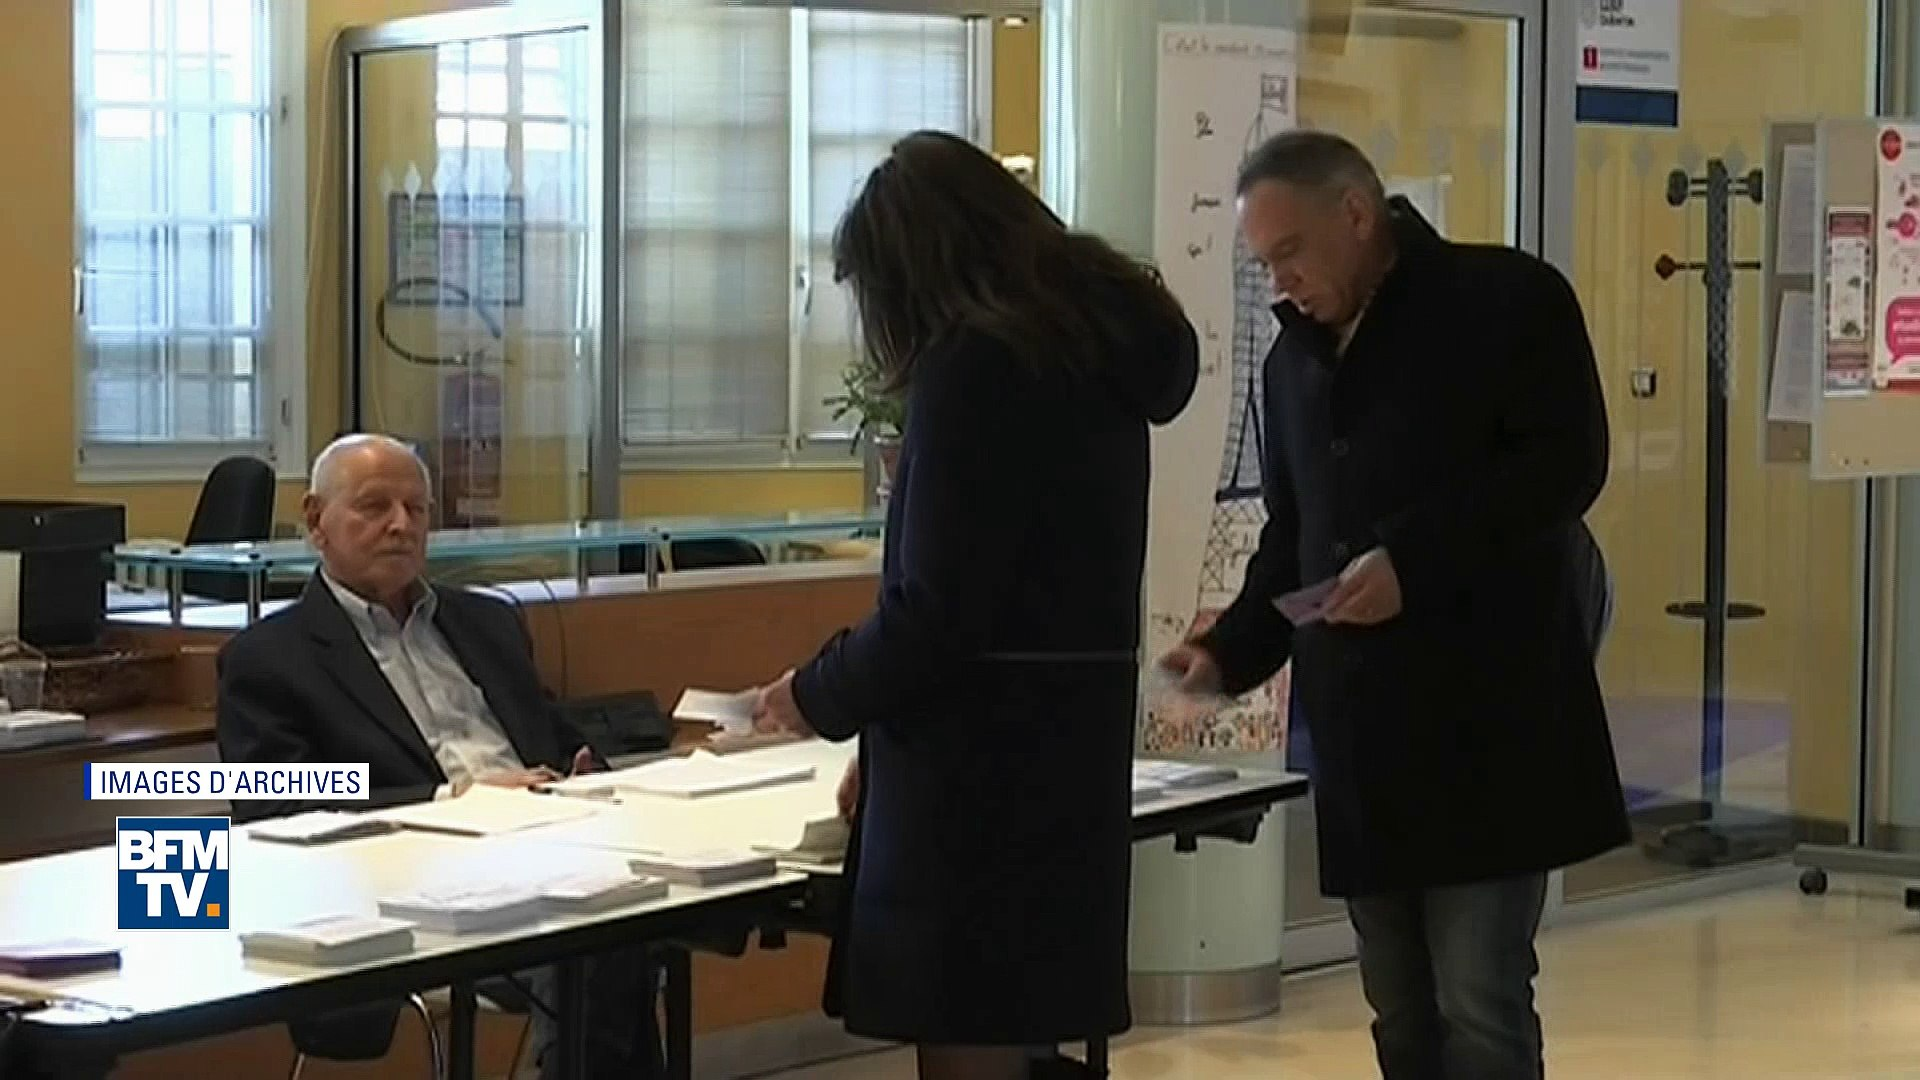 Peut On Voter Sans Sa Carte D Electeur Video Dailymotion